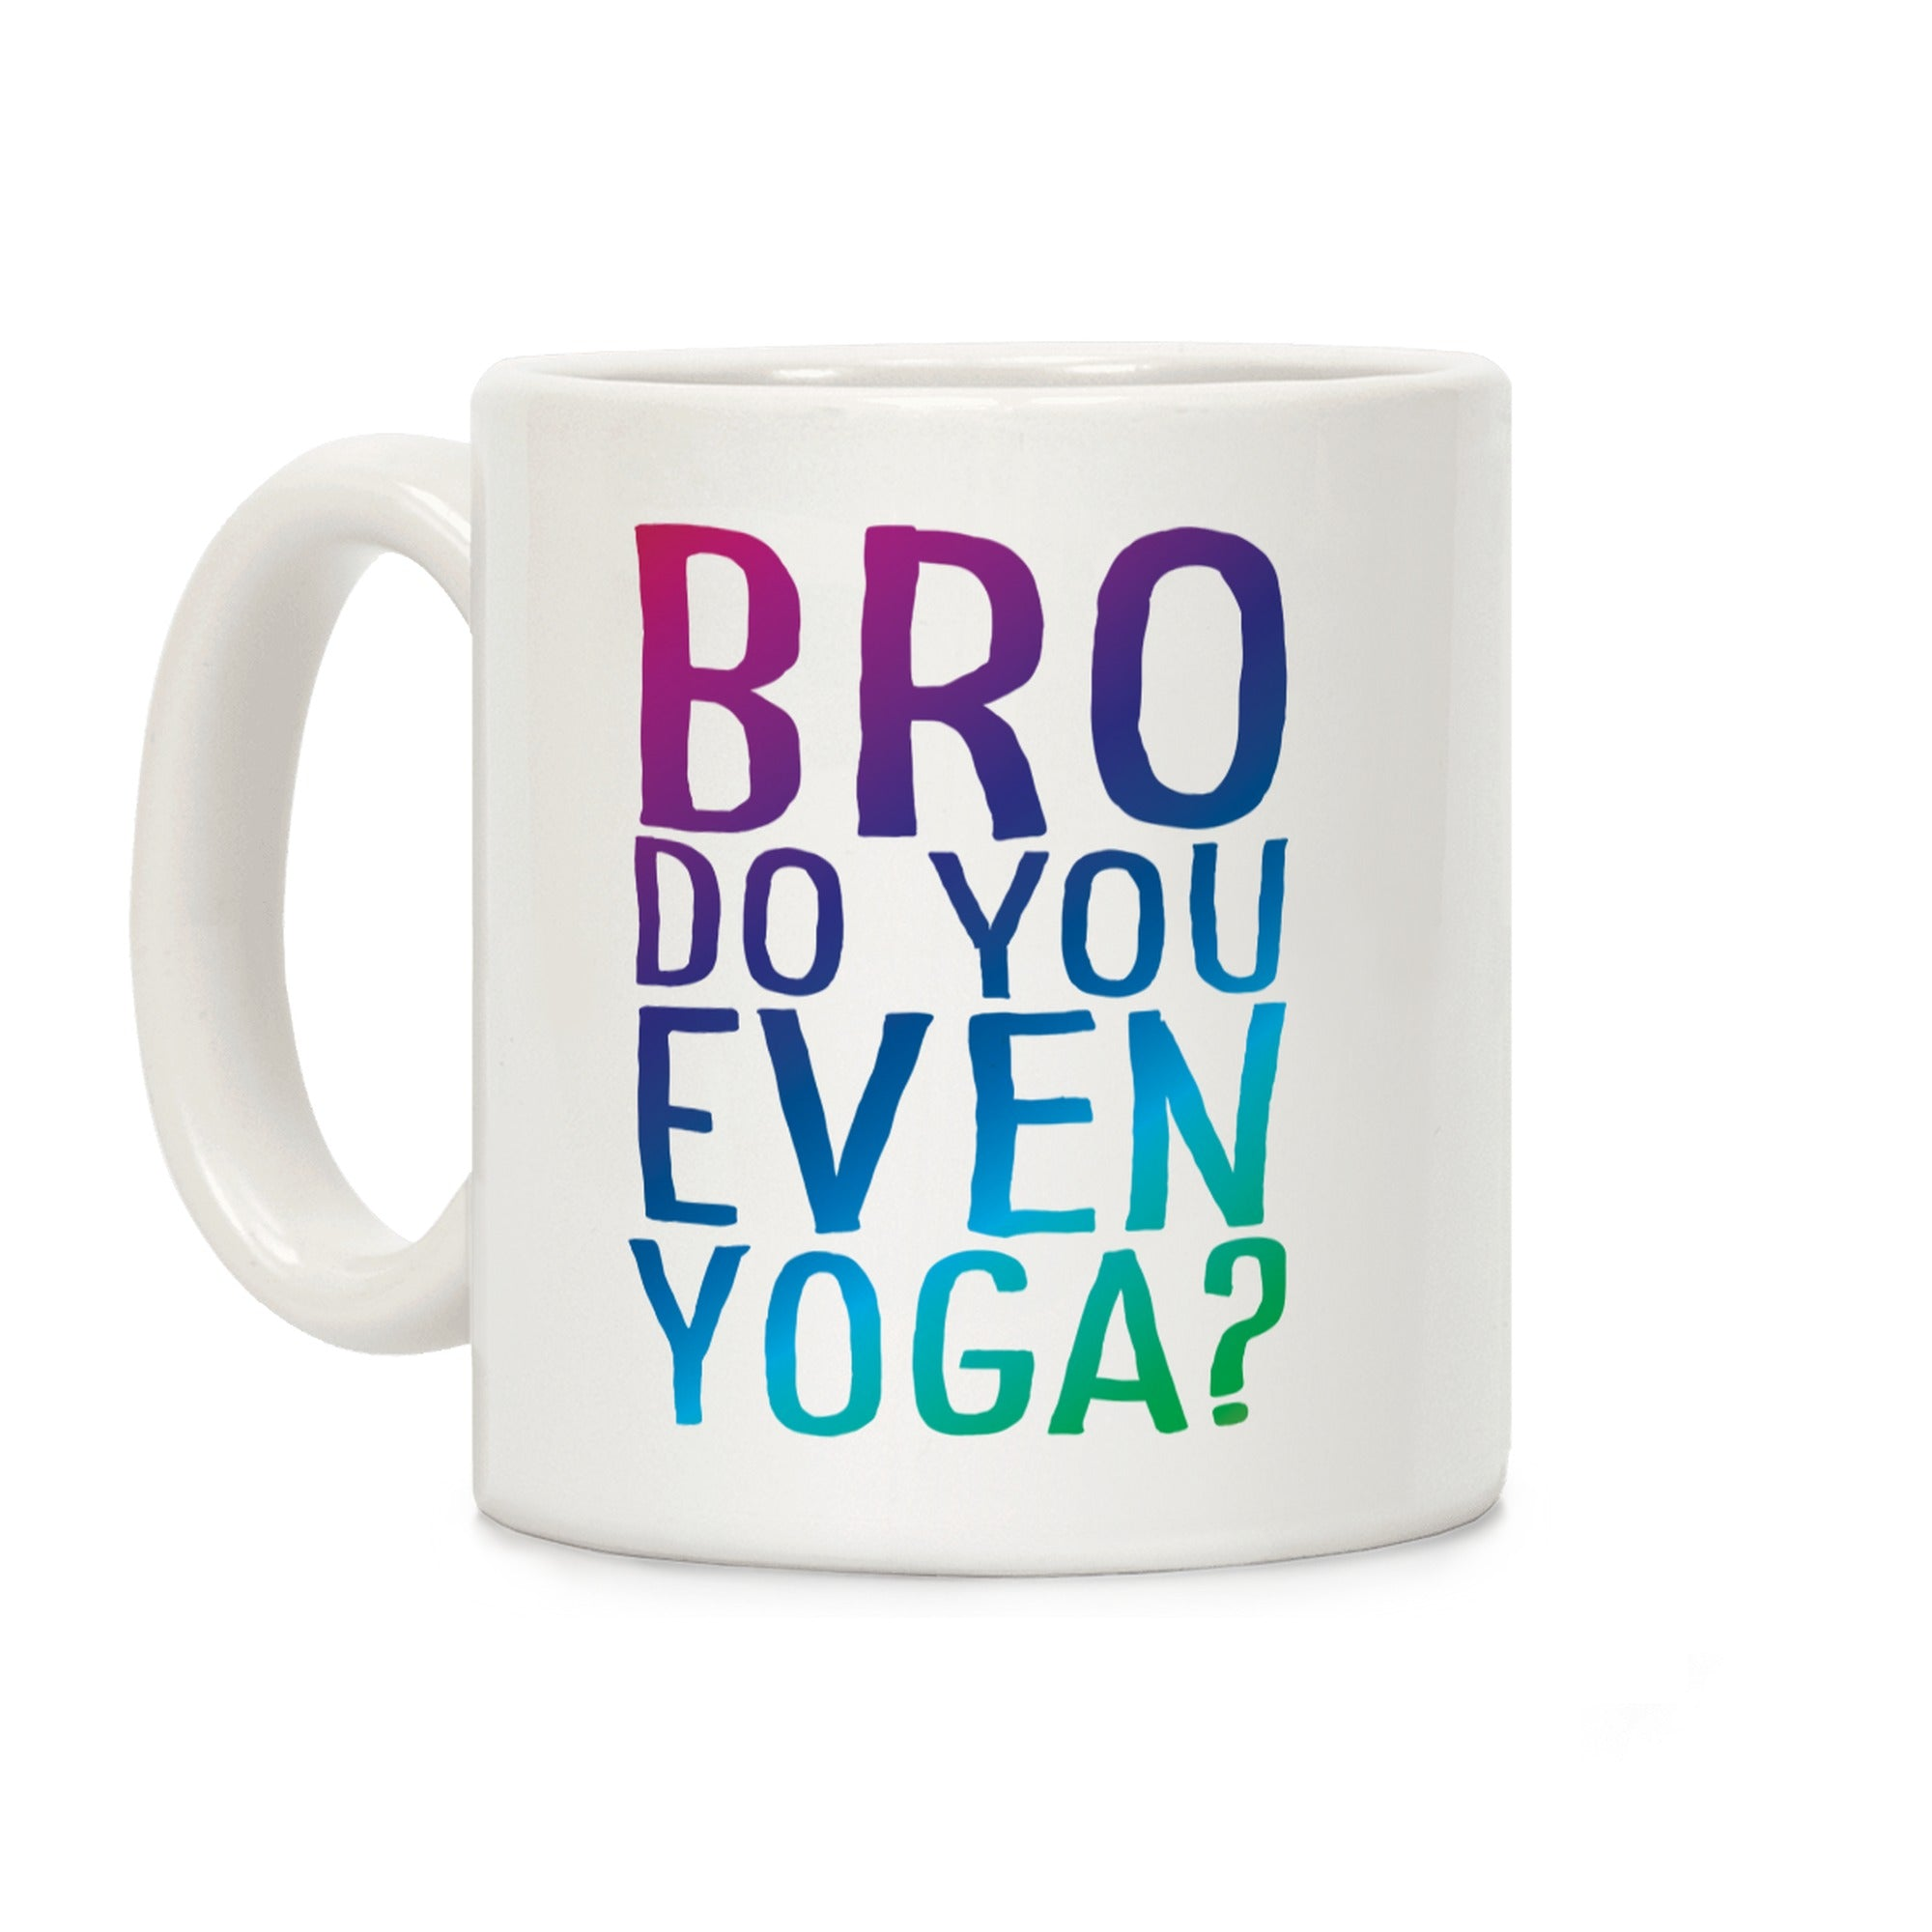 Bro Do You Even Yoga Ceramic Coffee Mug